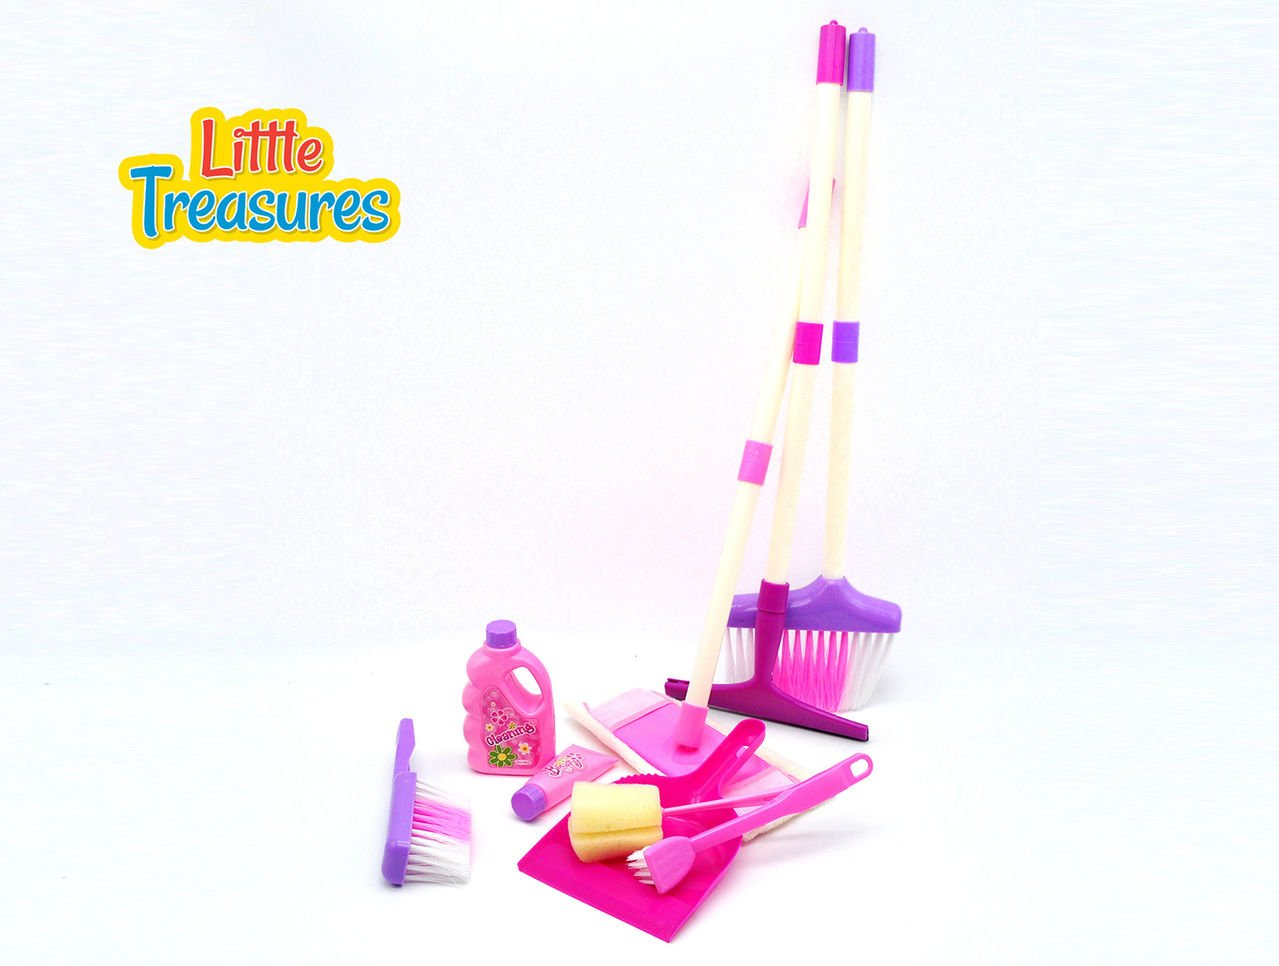 Little Treasures My Little Helper Pretend Play 9 Piece Cleaning Play Set with mop, Dish Brush, soap, Dustpan and Brush, Broom, Squeegee and Sponge by Little Treasures